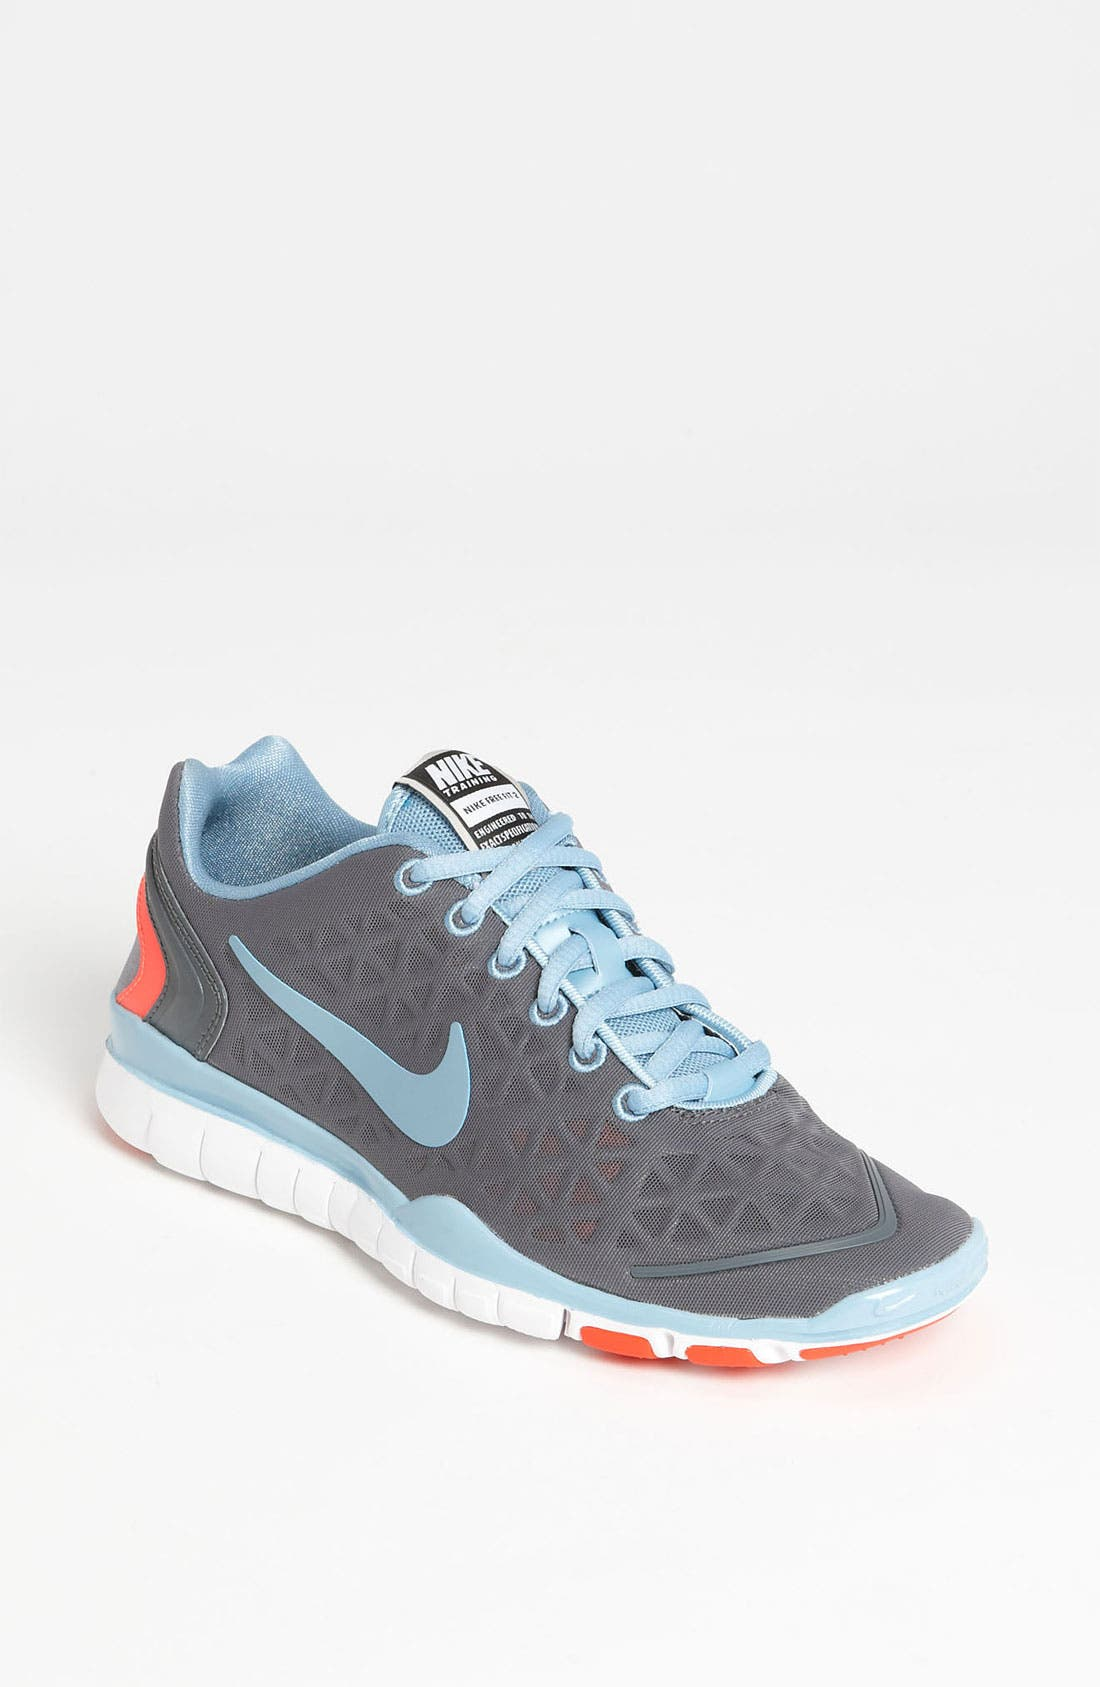 Main Image - Nike 'Free TR Fit 2' Training Shoe (Women). 4.35